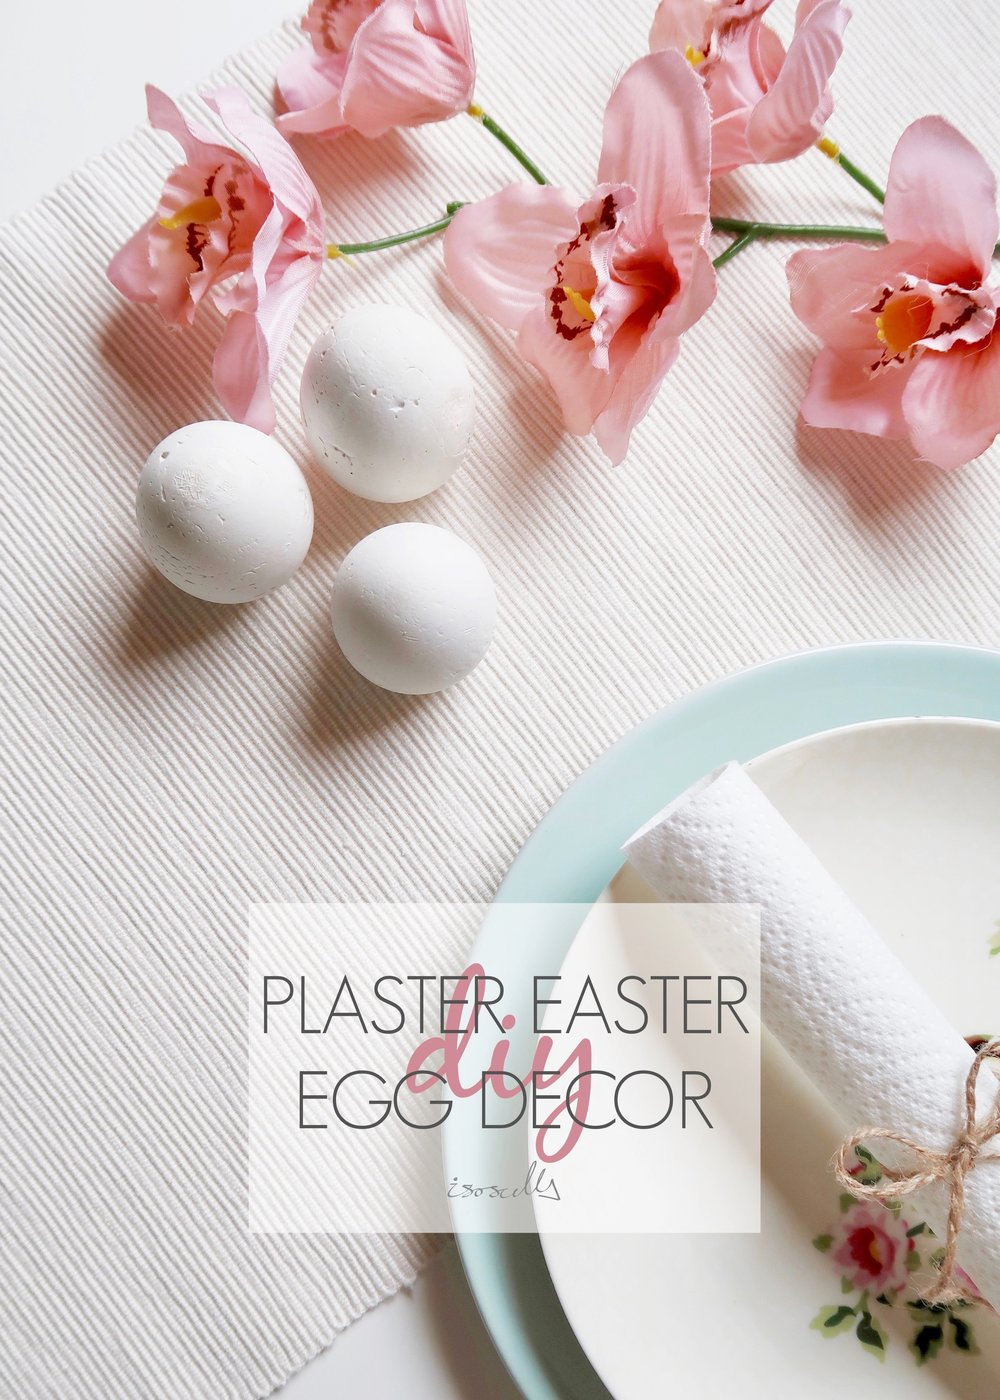 DIY Plaster Easter Egg Decor by Isoscella